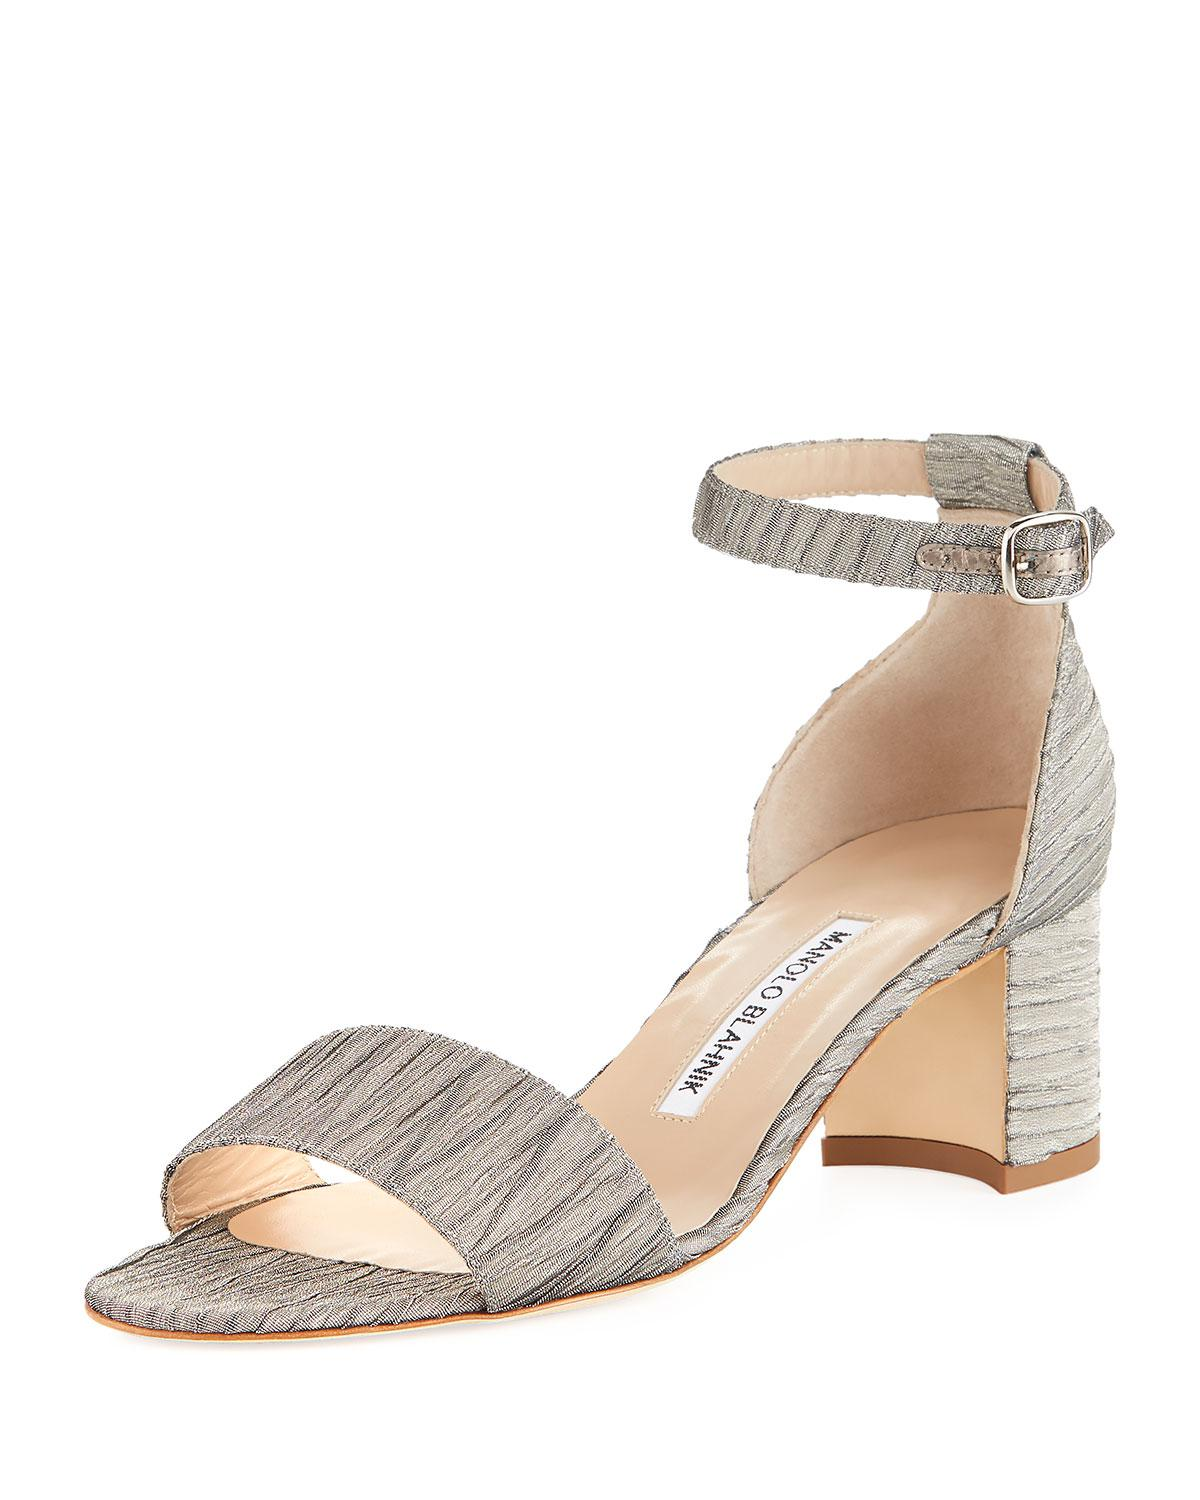 Manolo Blahnik Metallic Printed Sandals outlet low cost akFthS93O